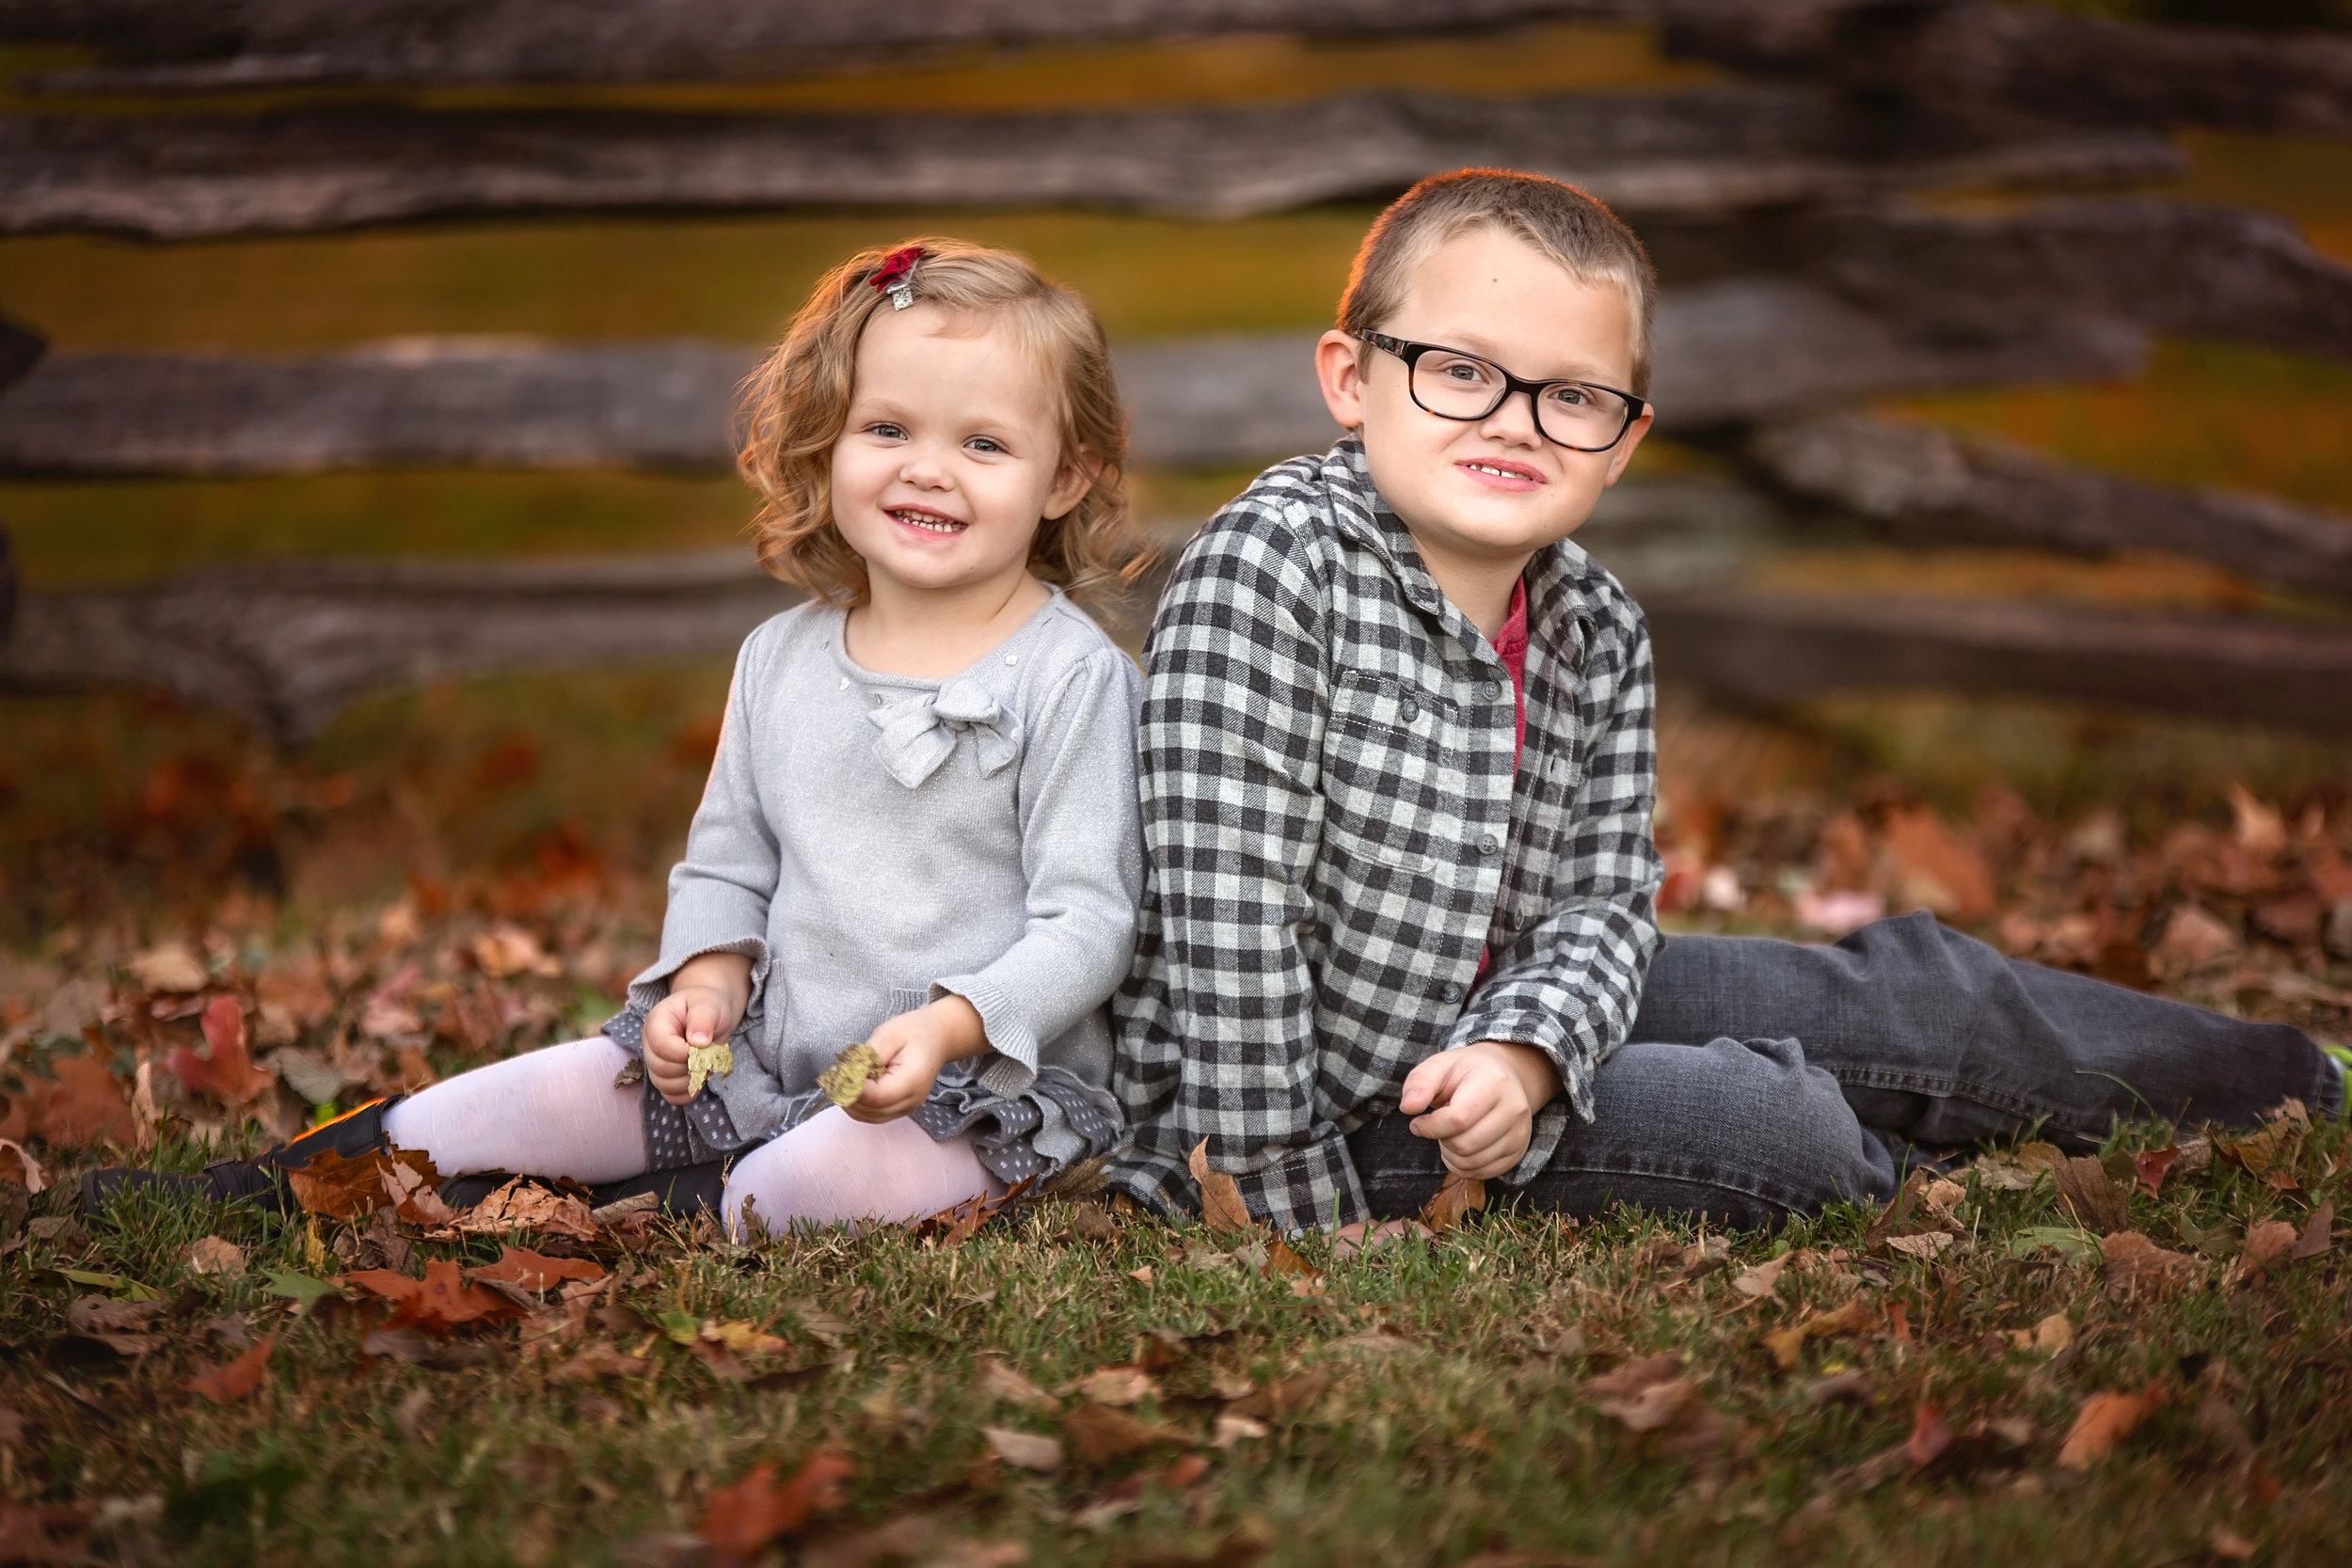 Brother and sister pose back to back in fall colored leaves in front of a wooden fence during their fall family session in Springfield, MO